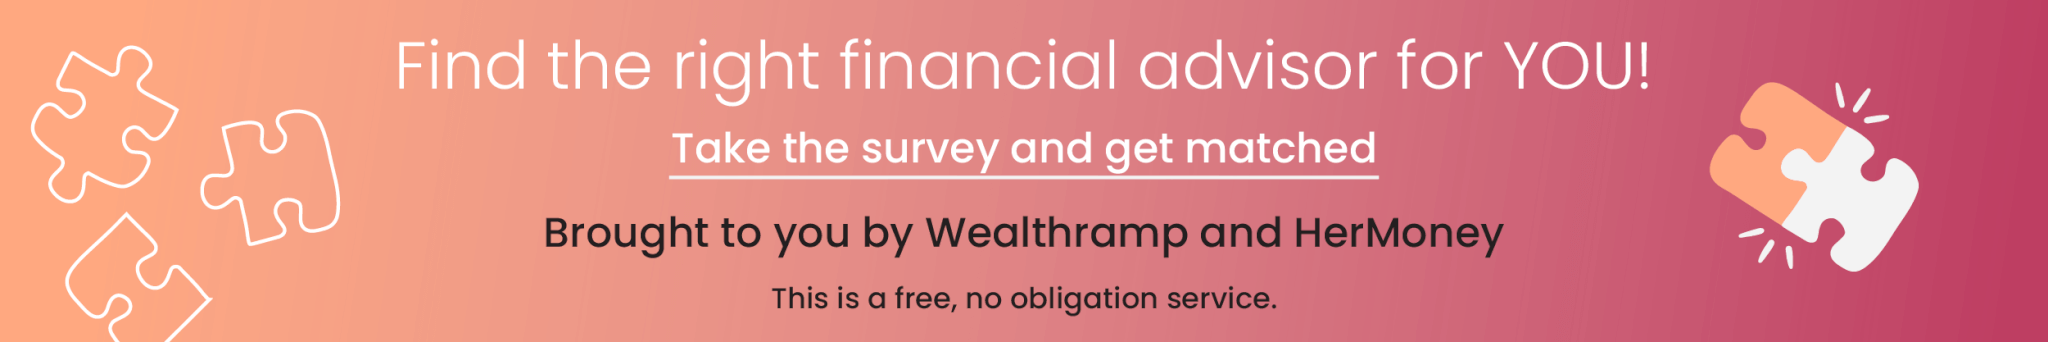 Wealthramp_HerMoney_partnership